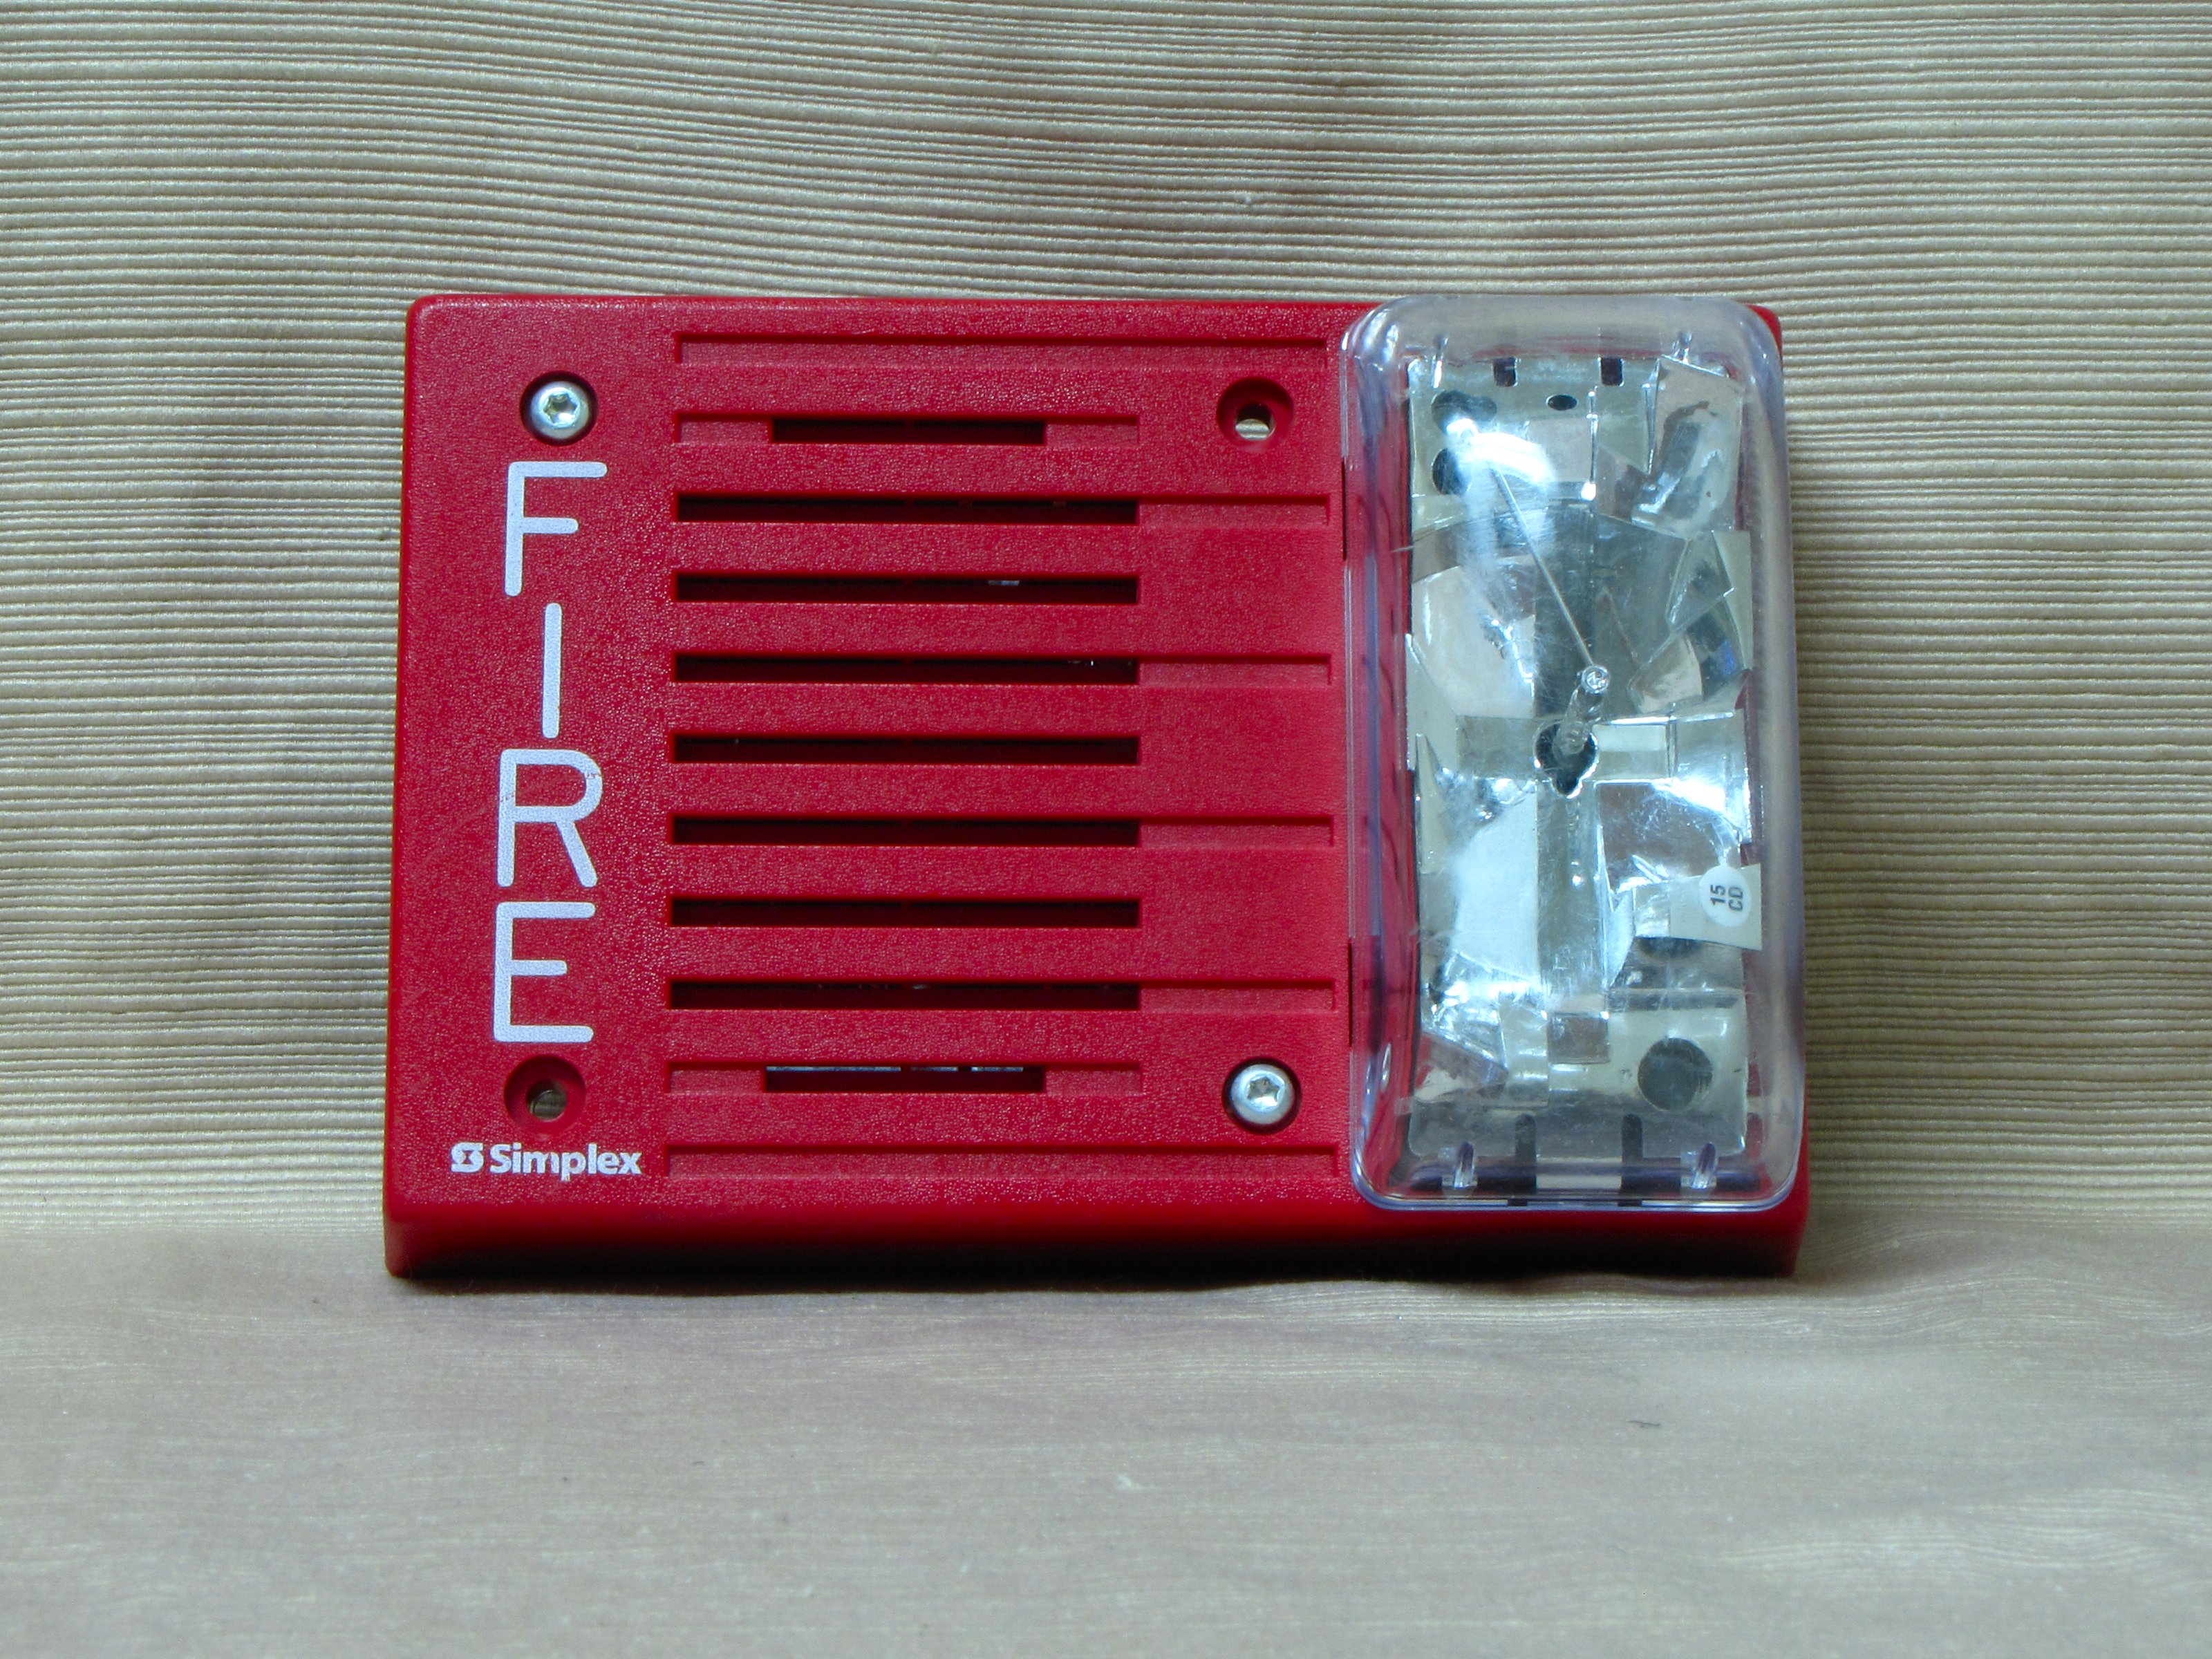 Led Strobe Light Circuit Diagram also 13310 D1xc1x05f Alarm Horn Xenon Strobe furthermore Syssumm additionally Products furthermore Watch. on fire alarm strobe light